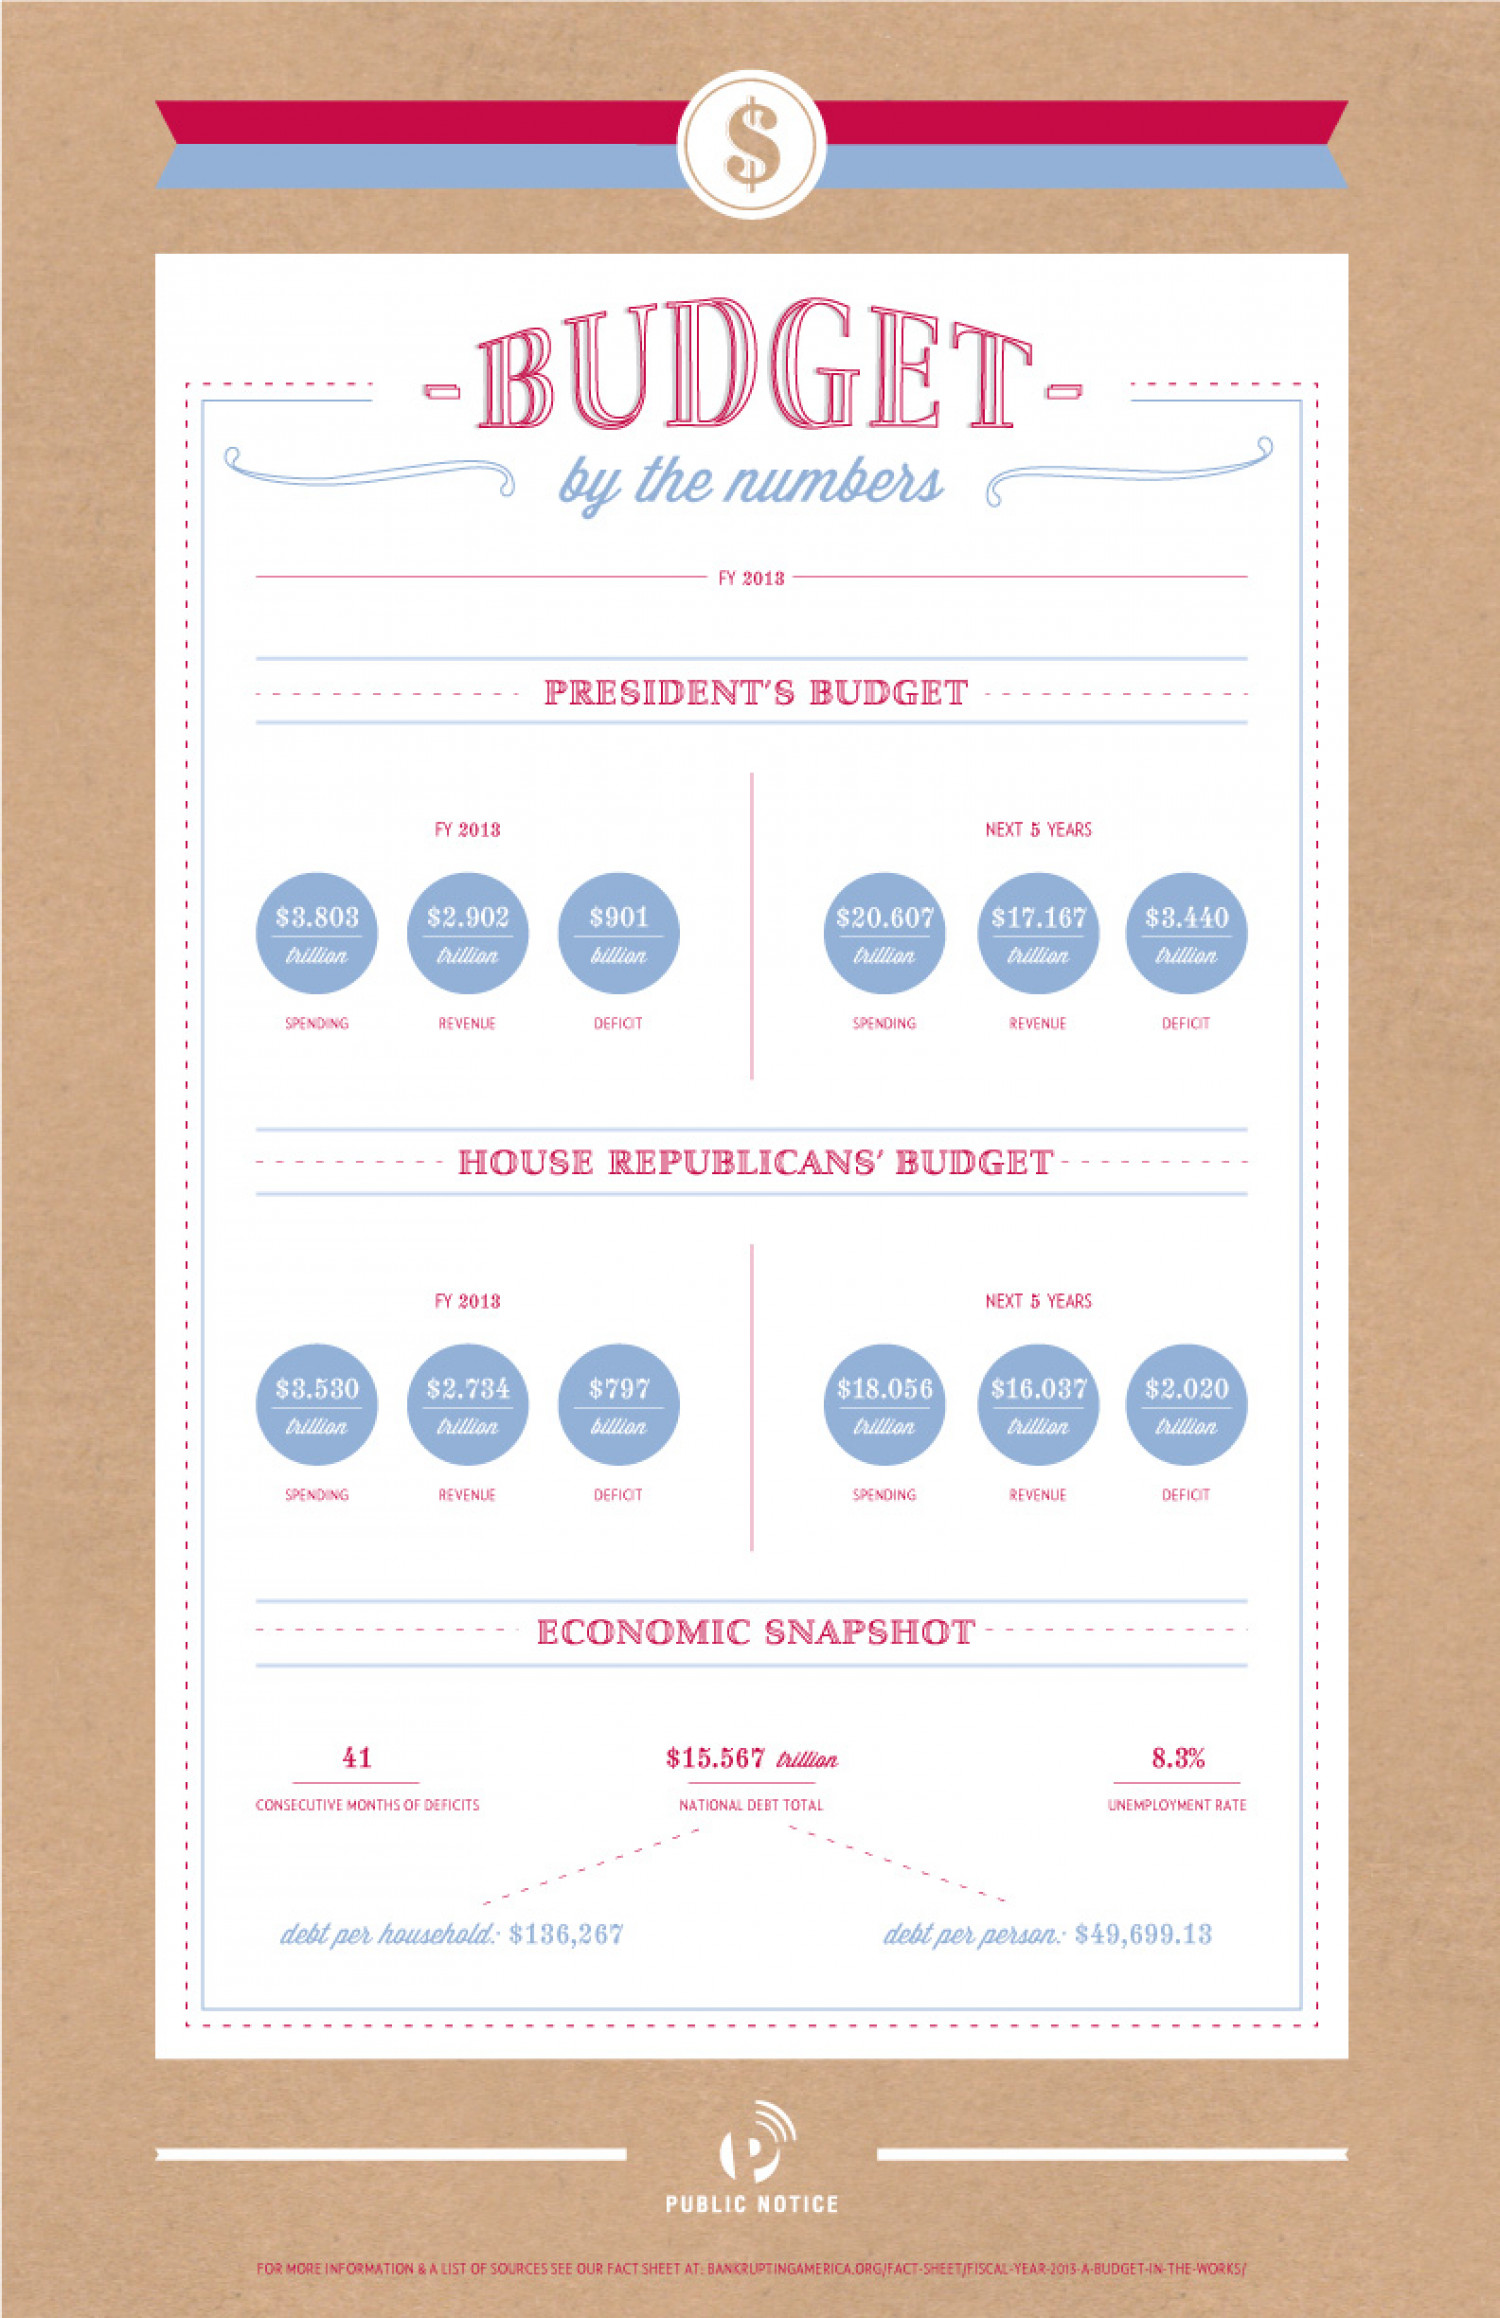 Fiscal Year 2013 Budget By the Numbers Infographic